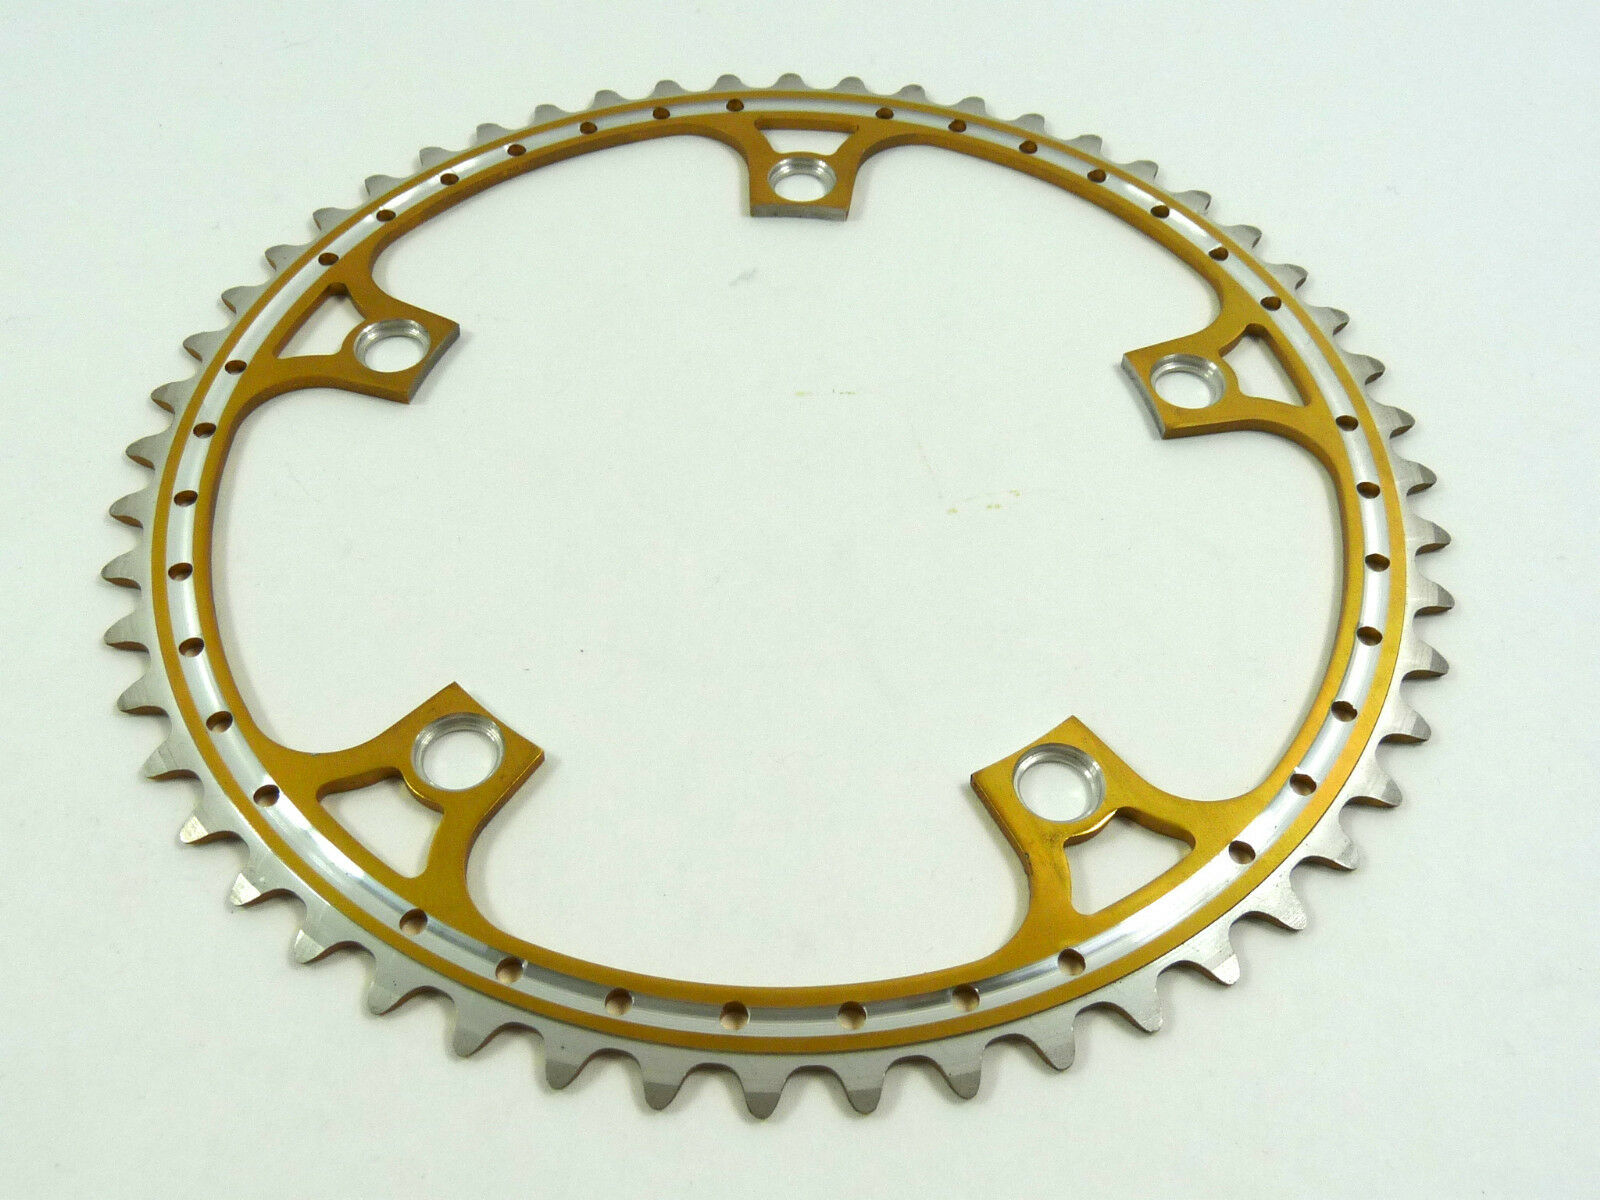 Rino gold Anodized Chainring 52T 144 Bcd Drilled Fits Campagnolo Cranksets NOS